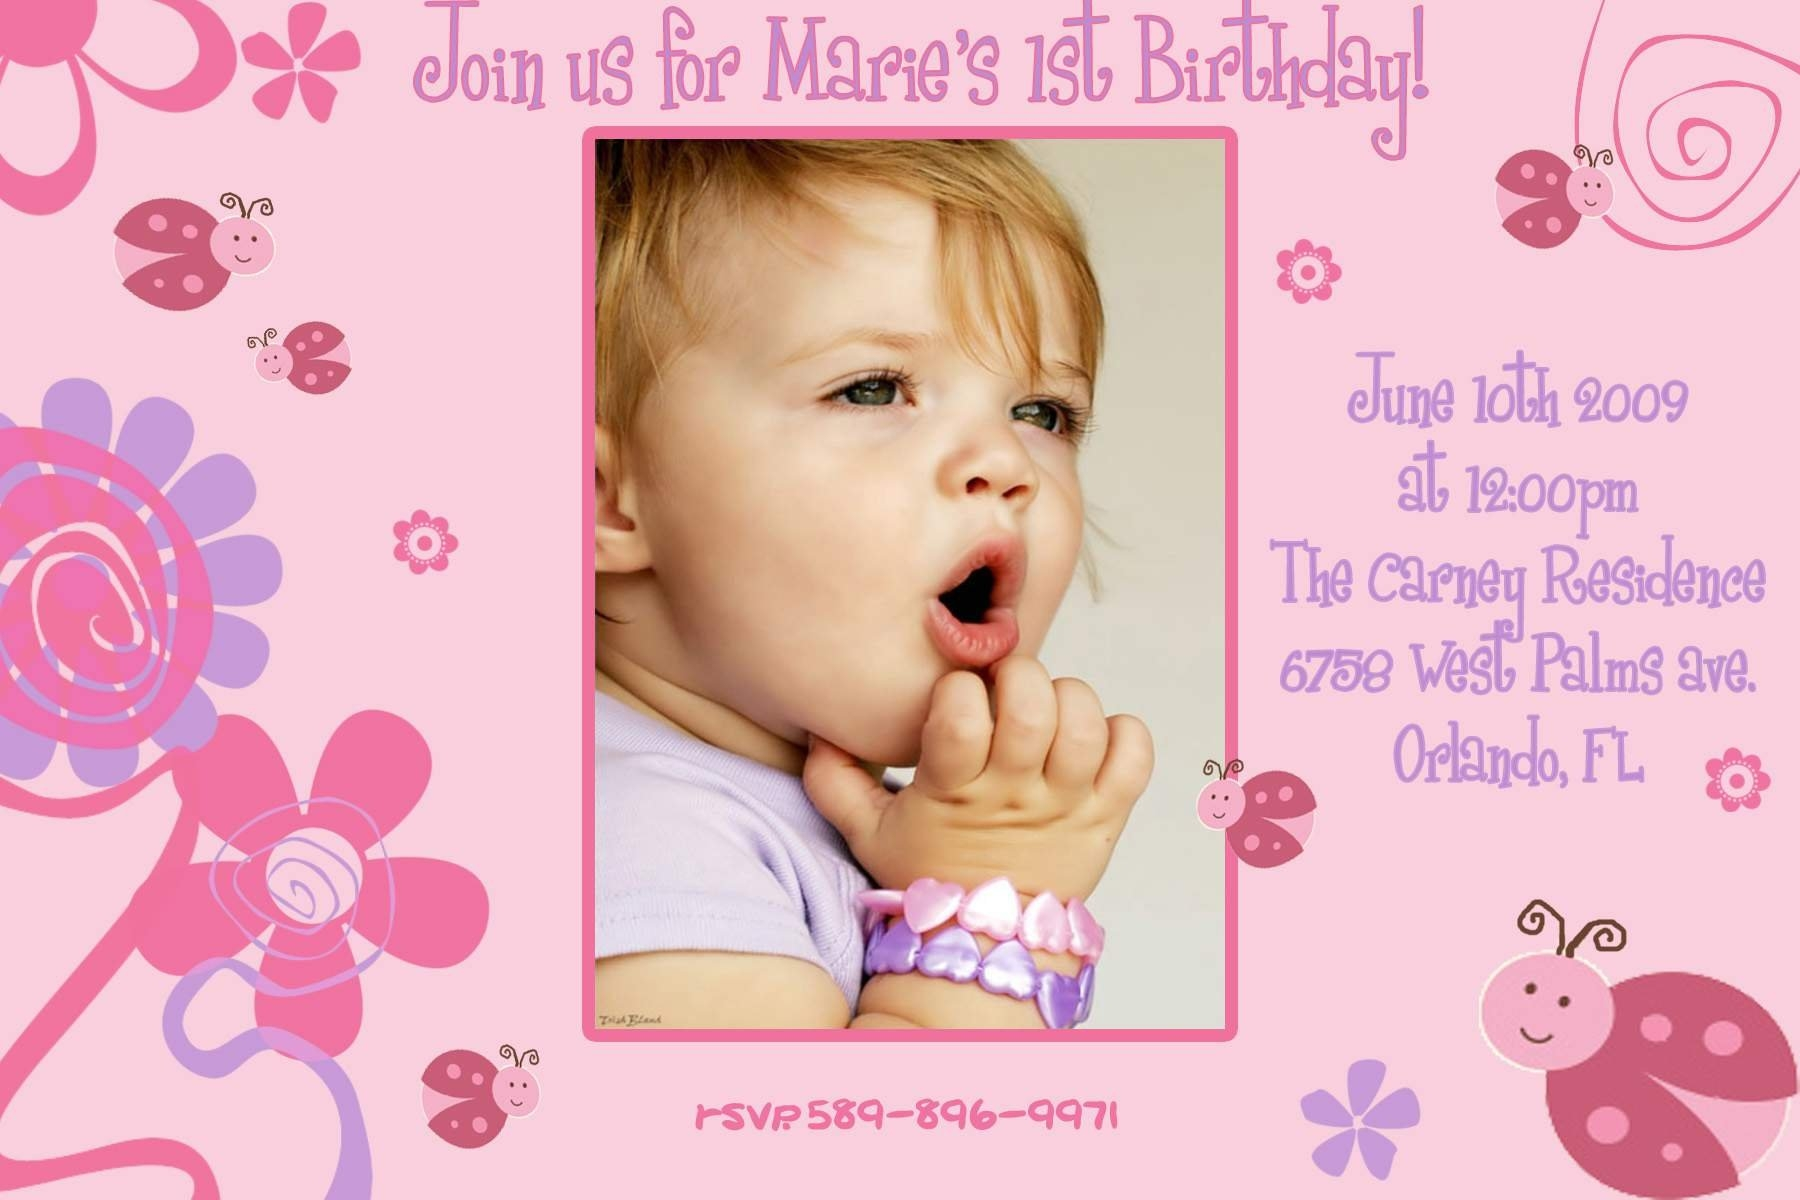 1st birthday invitations templates with photo free ; online-birthday-invitations-templates-free-commonpence-co-intended-for-first-birthday-invitation-card-template